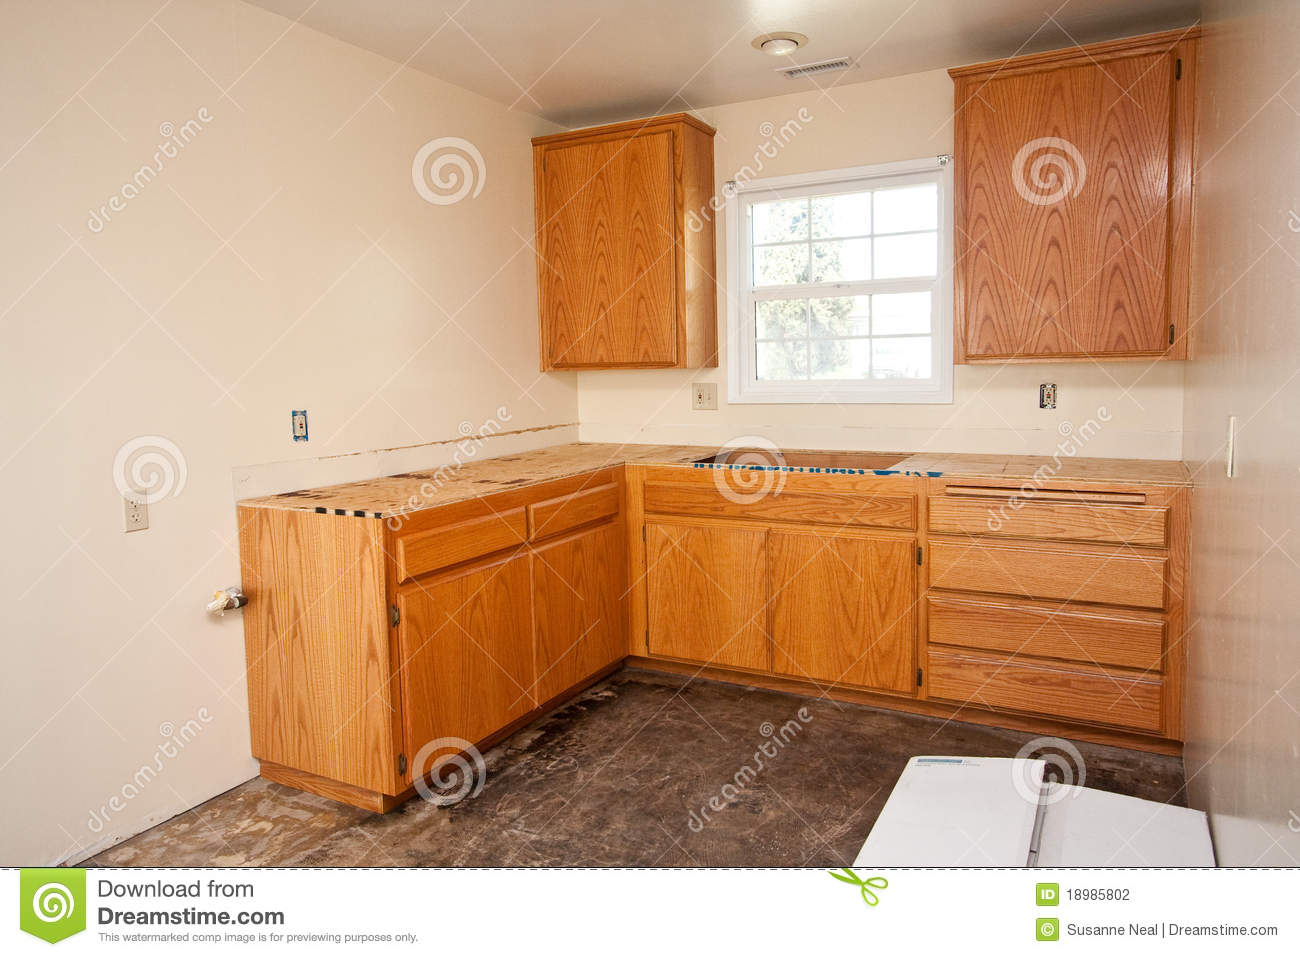 Oak Kitchen Cabinets Without Countertop Kitchen Is Being Remodeled